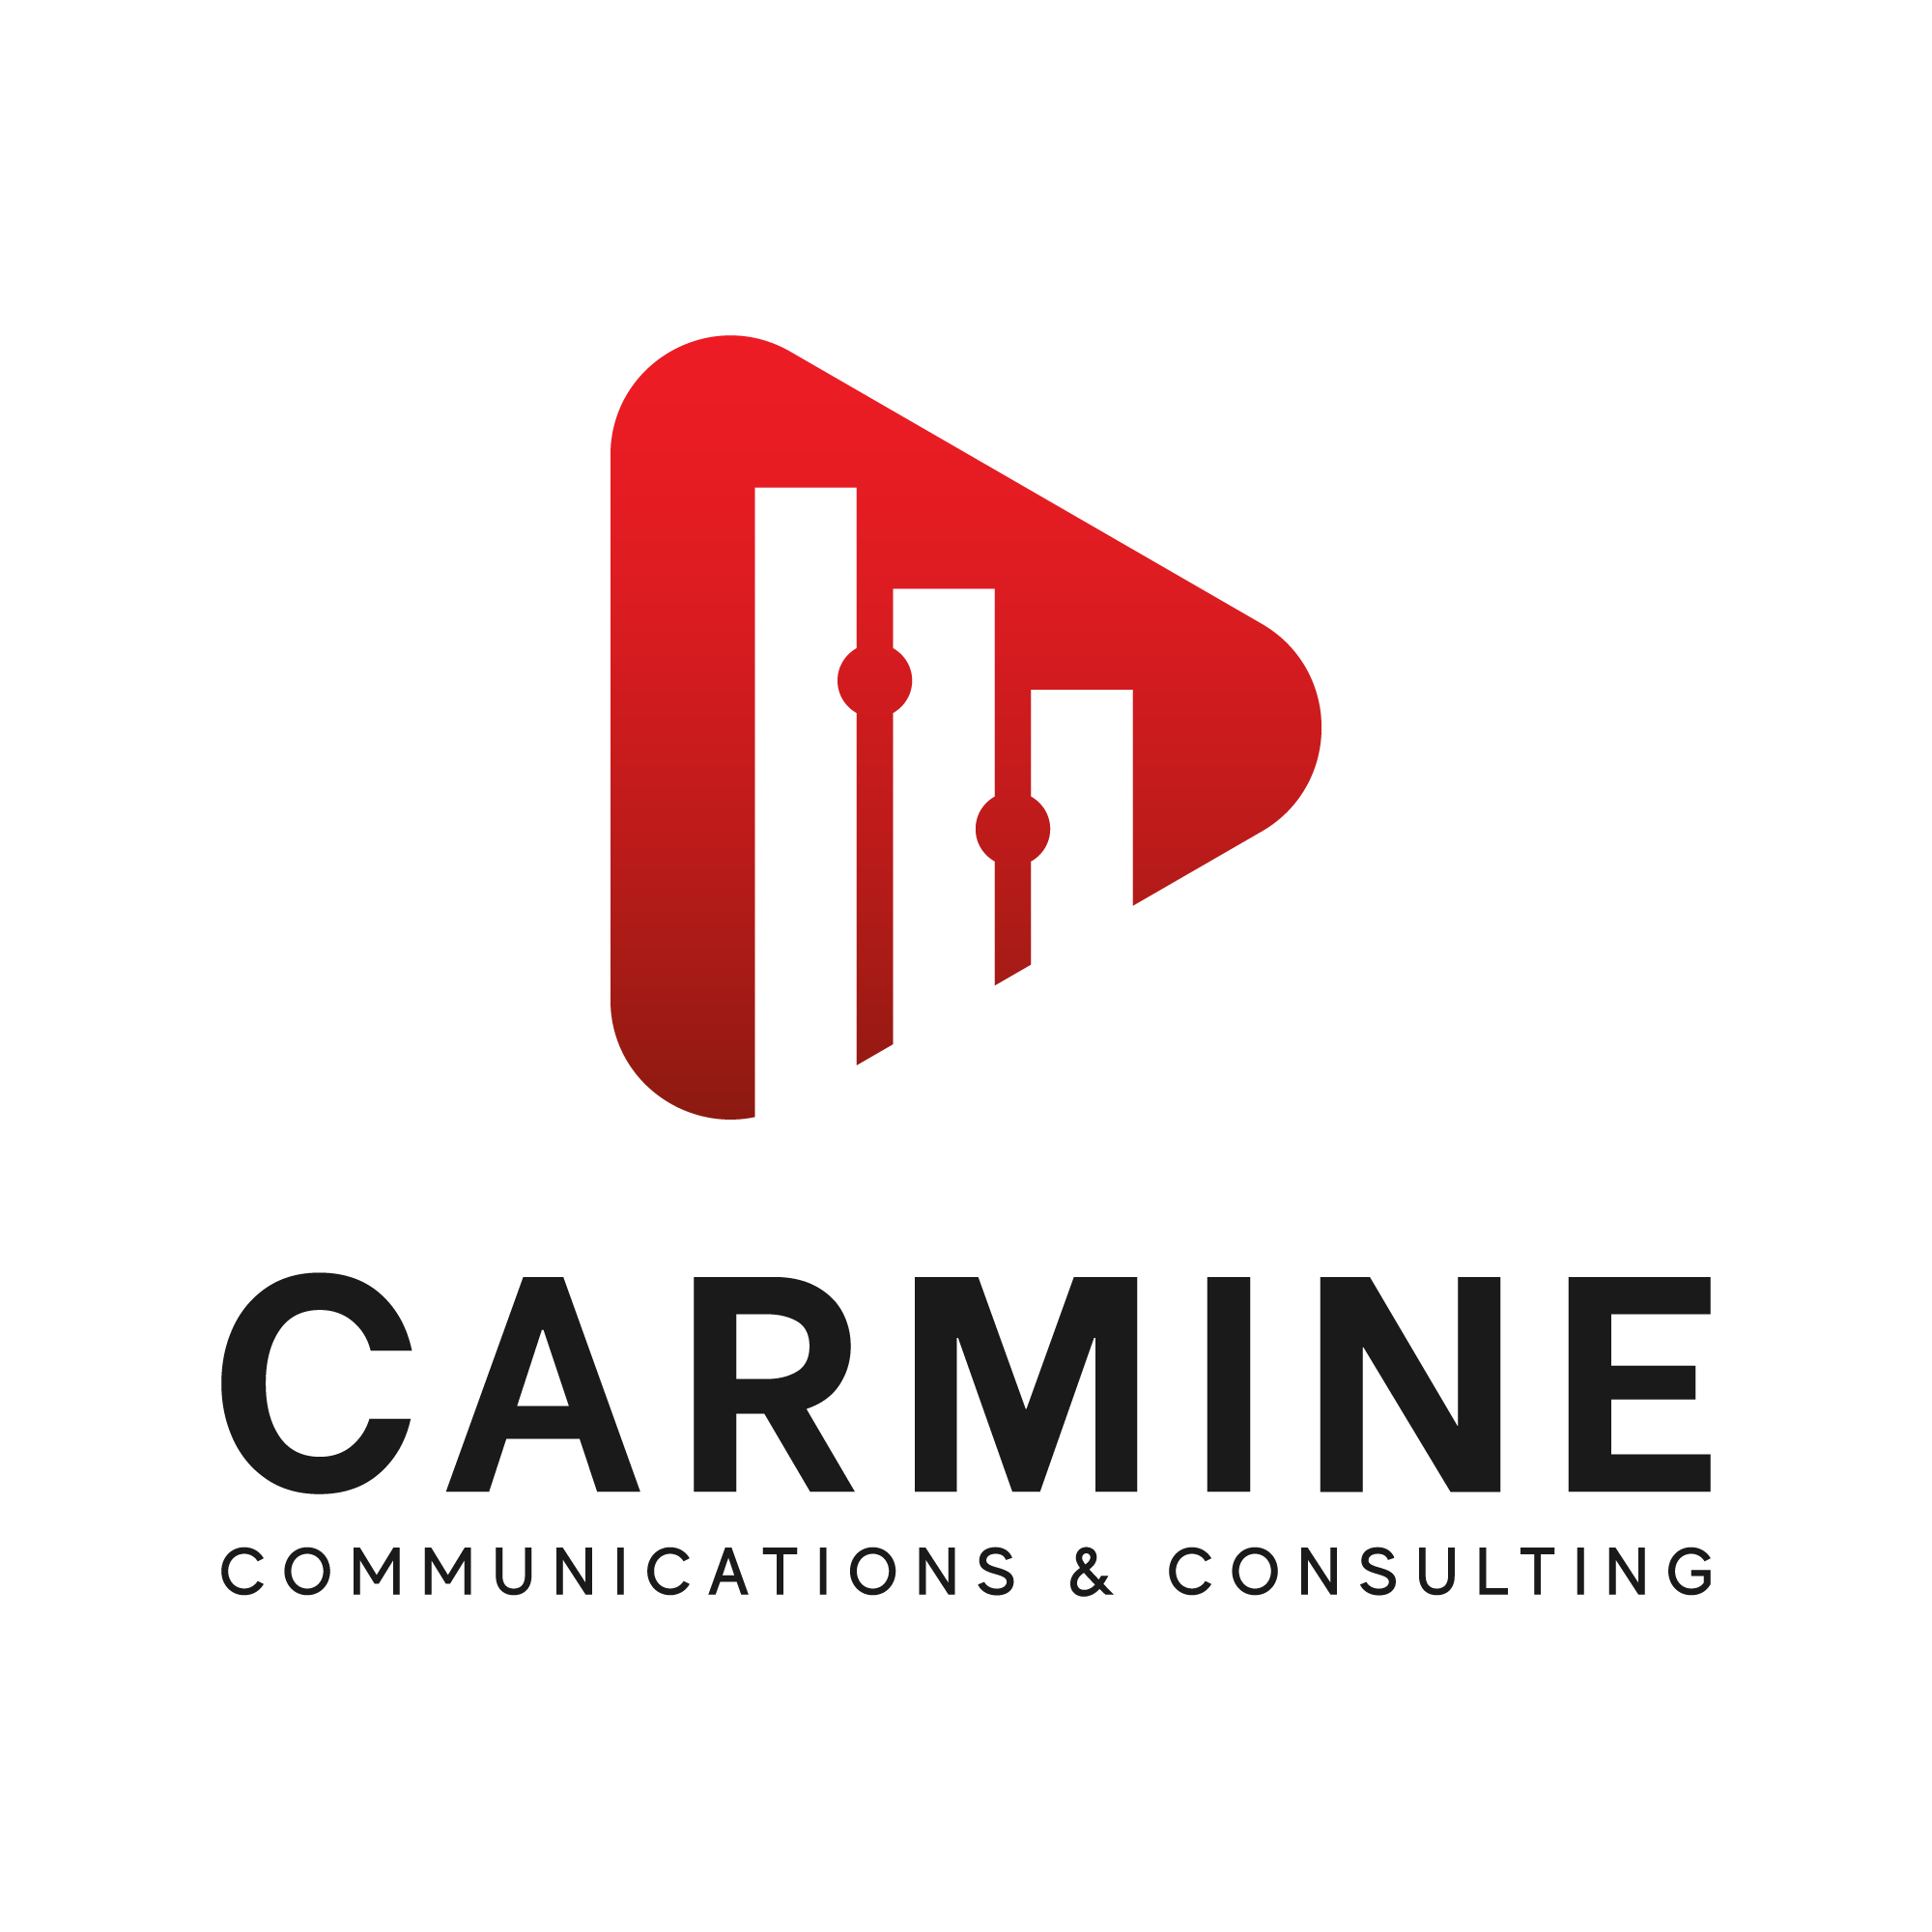 Carmine Communication